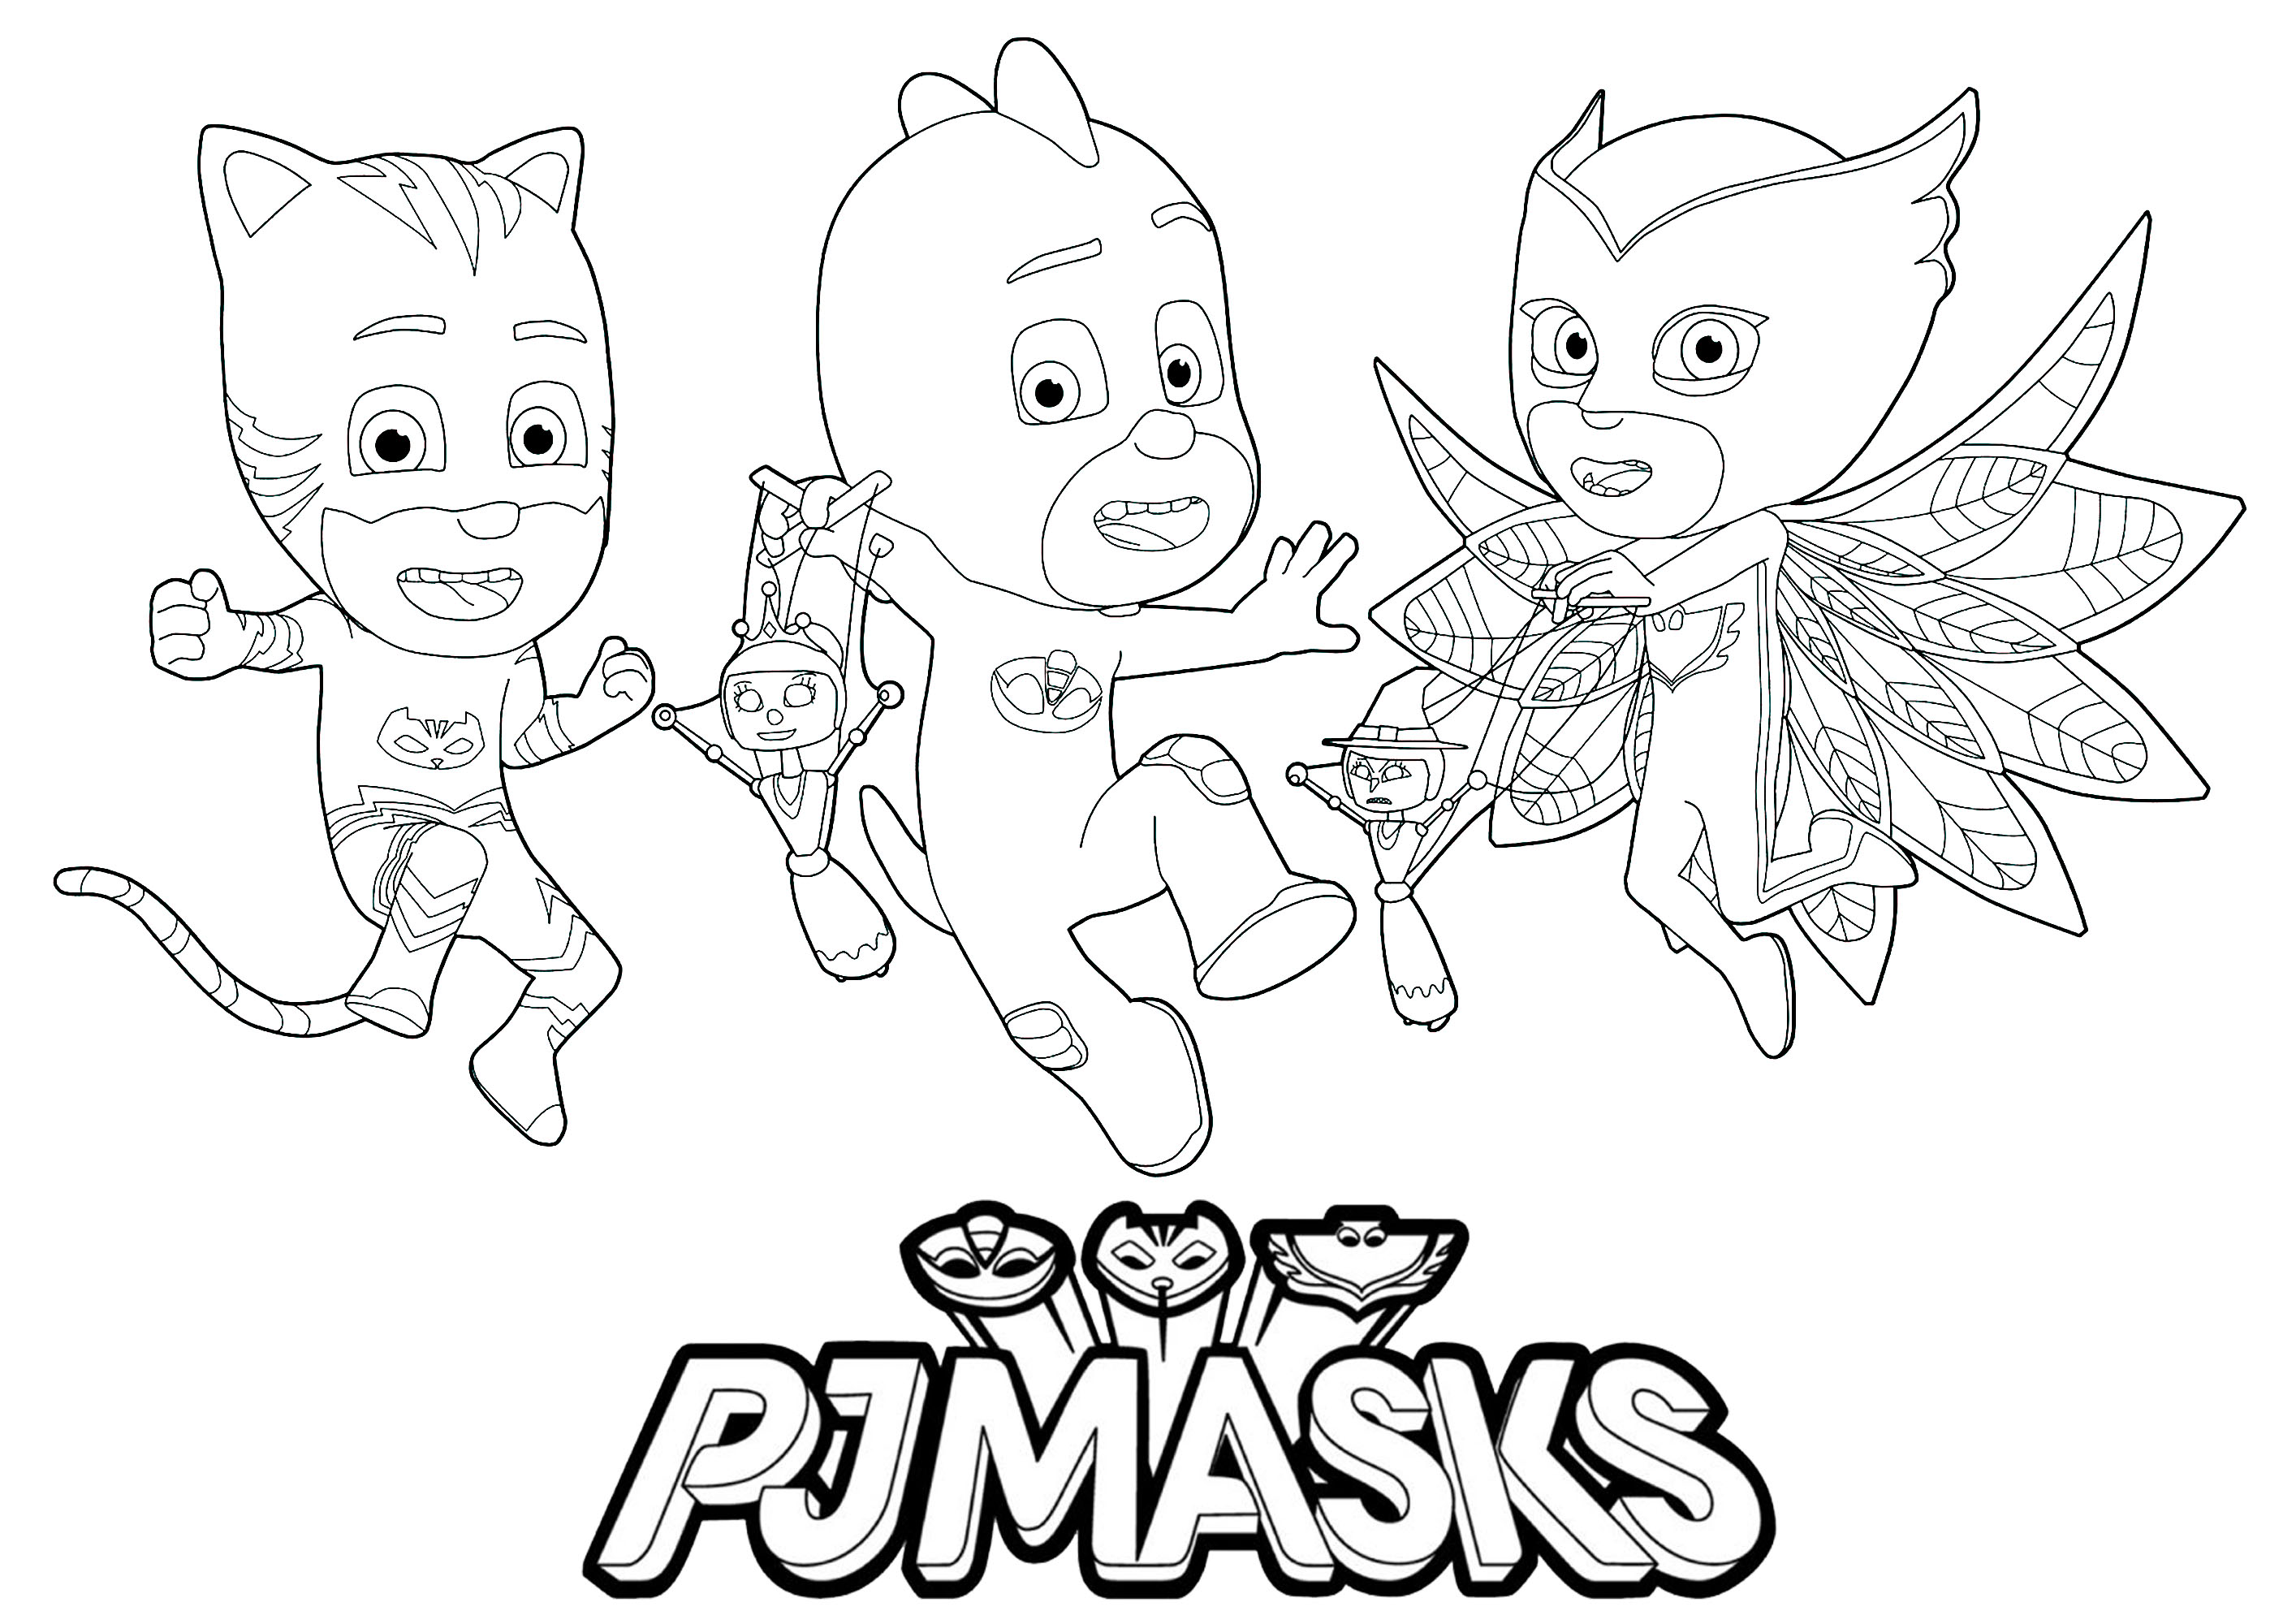 Free PJ Masks coloring page to print and color